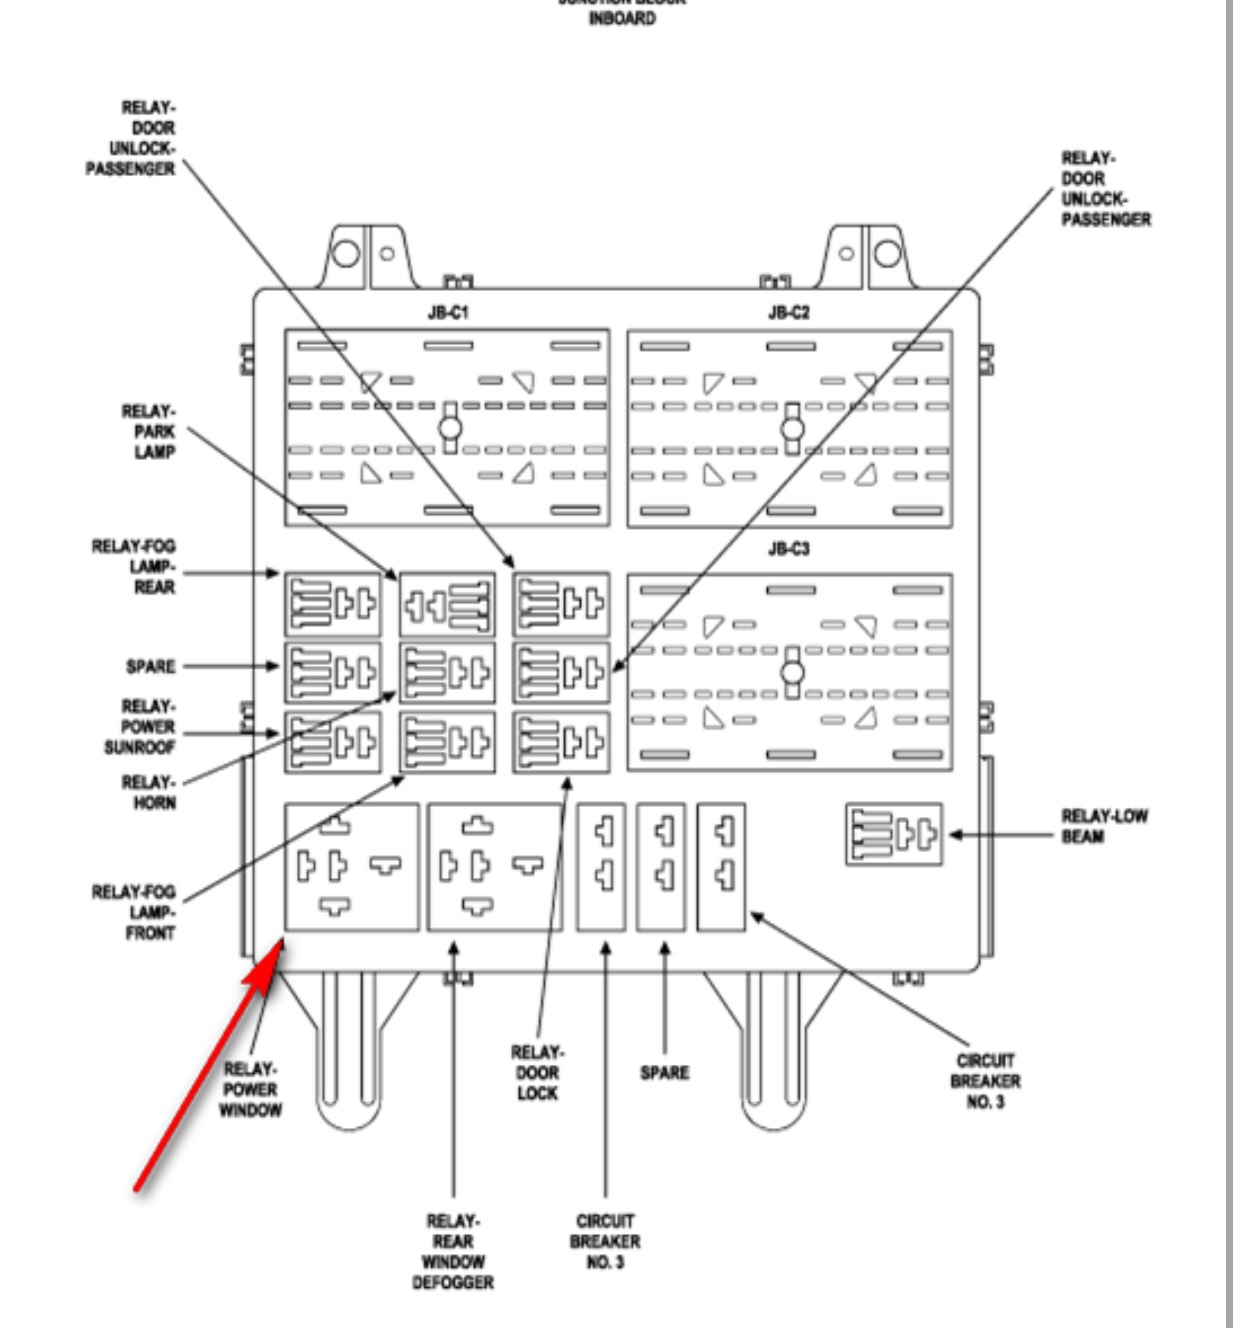 25610 Cj5 Wiring Diagram Cj7 Wiring Diagram Wiring Diagram